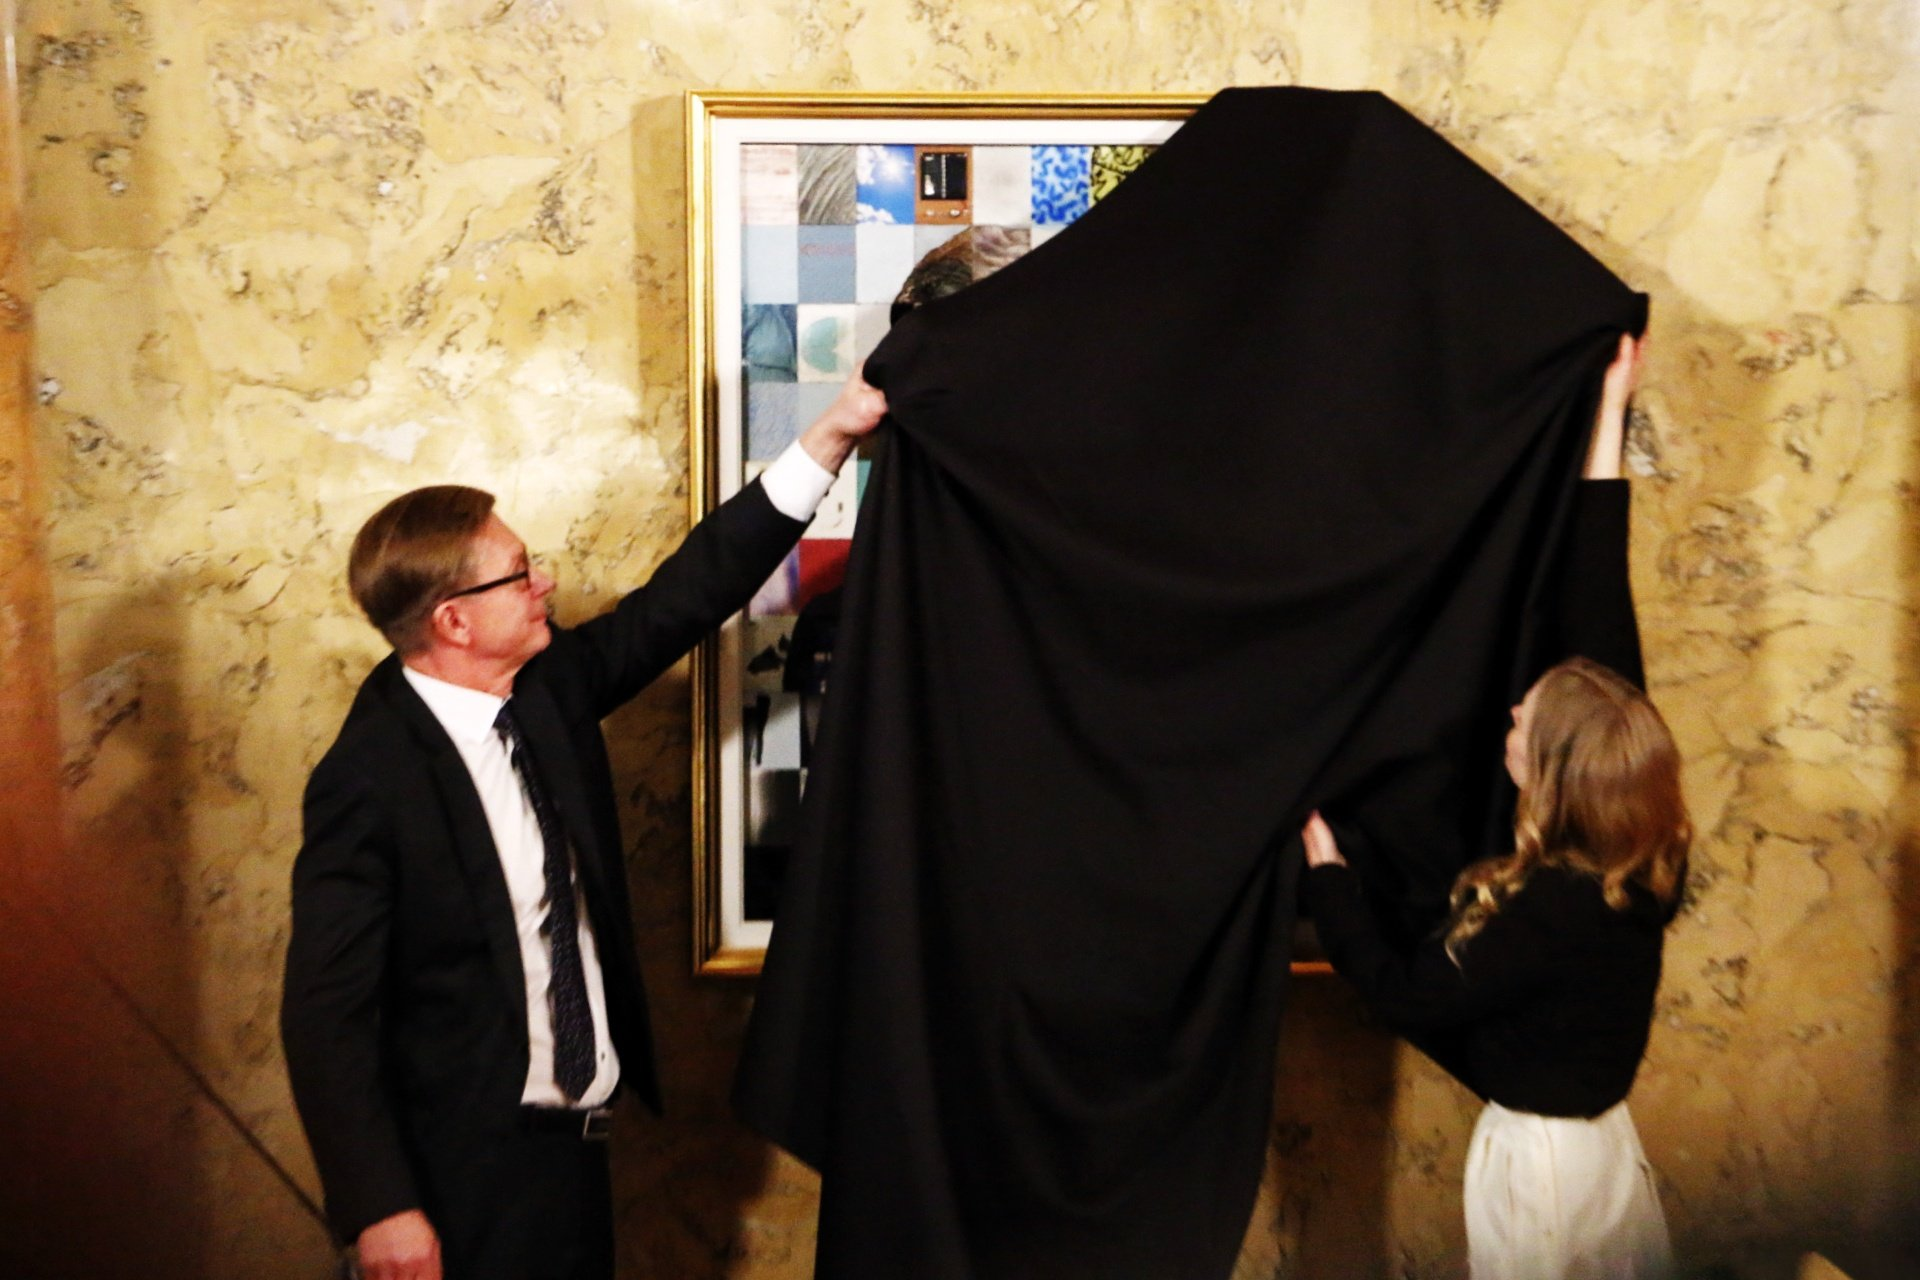 The Portrait of President Sauli Niinistö is Revealed – View the Pictures